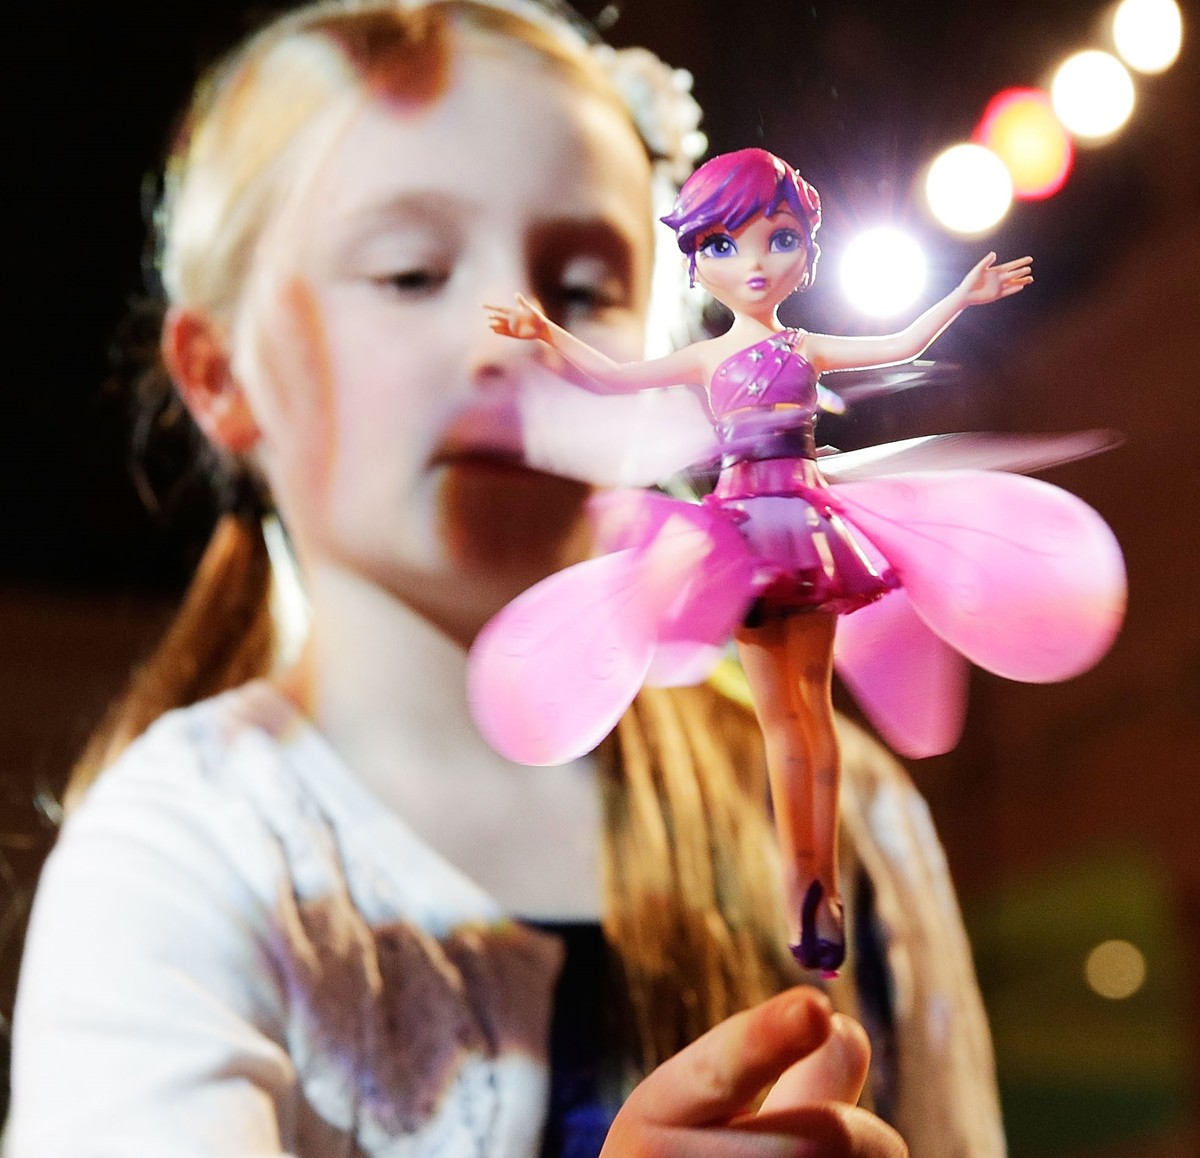 A girl places a finger underneath a flying fairy toy.